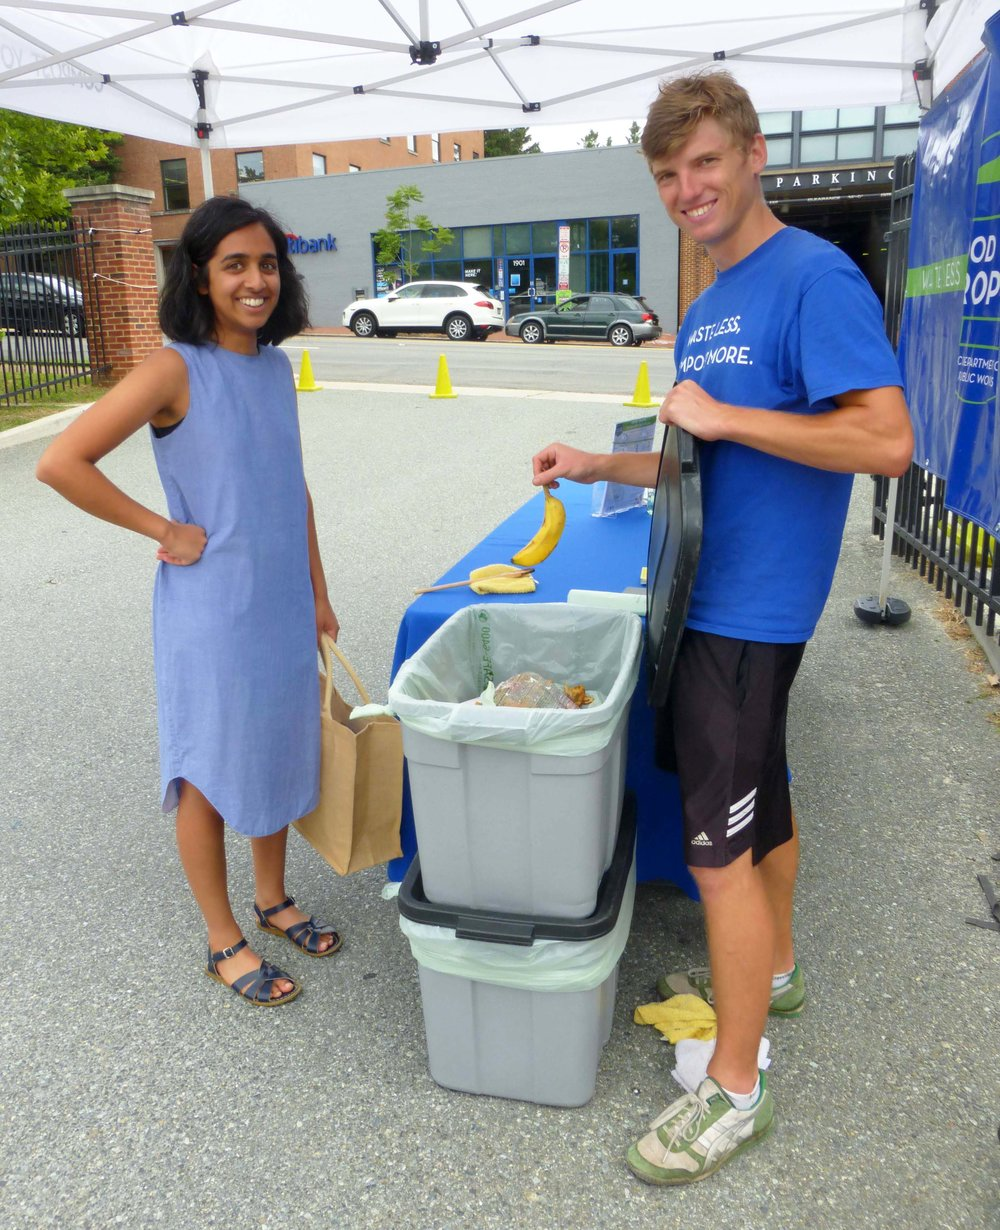 drop-offs have increased over the summer, says Fred, with watermelon rinds and corn cobs making the collection bins heavier than ever.